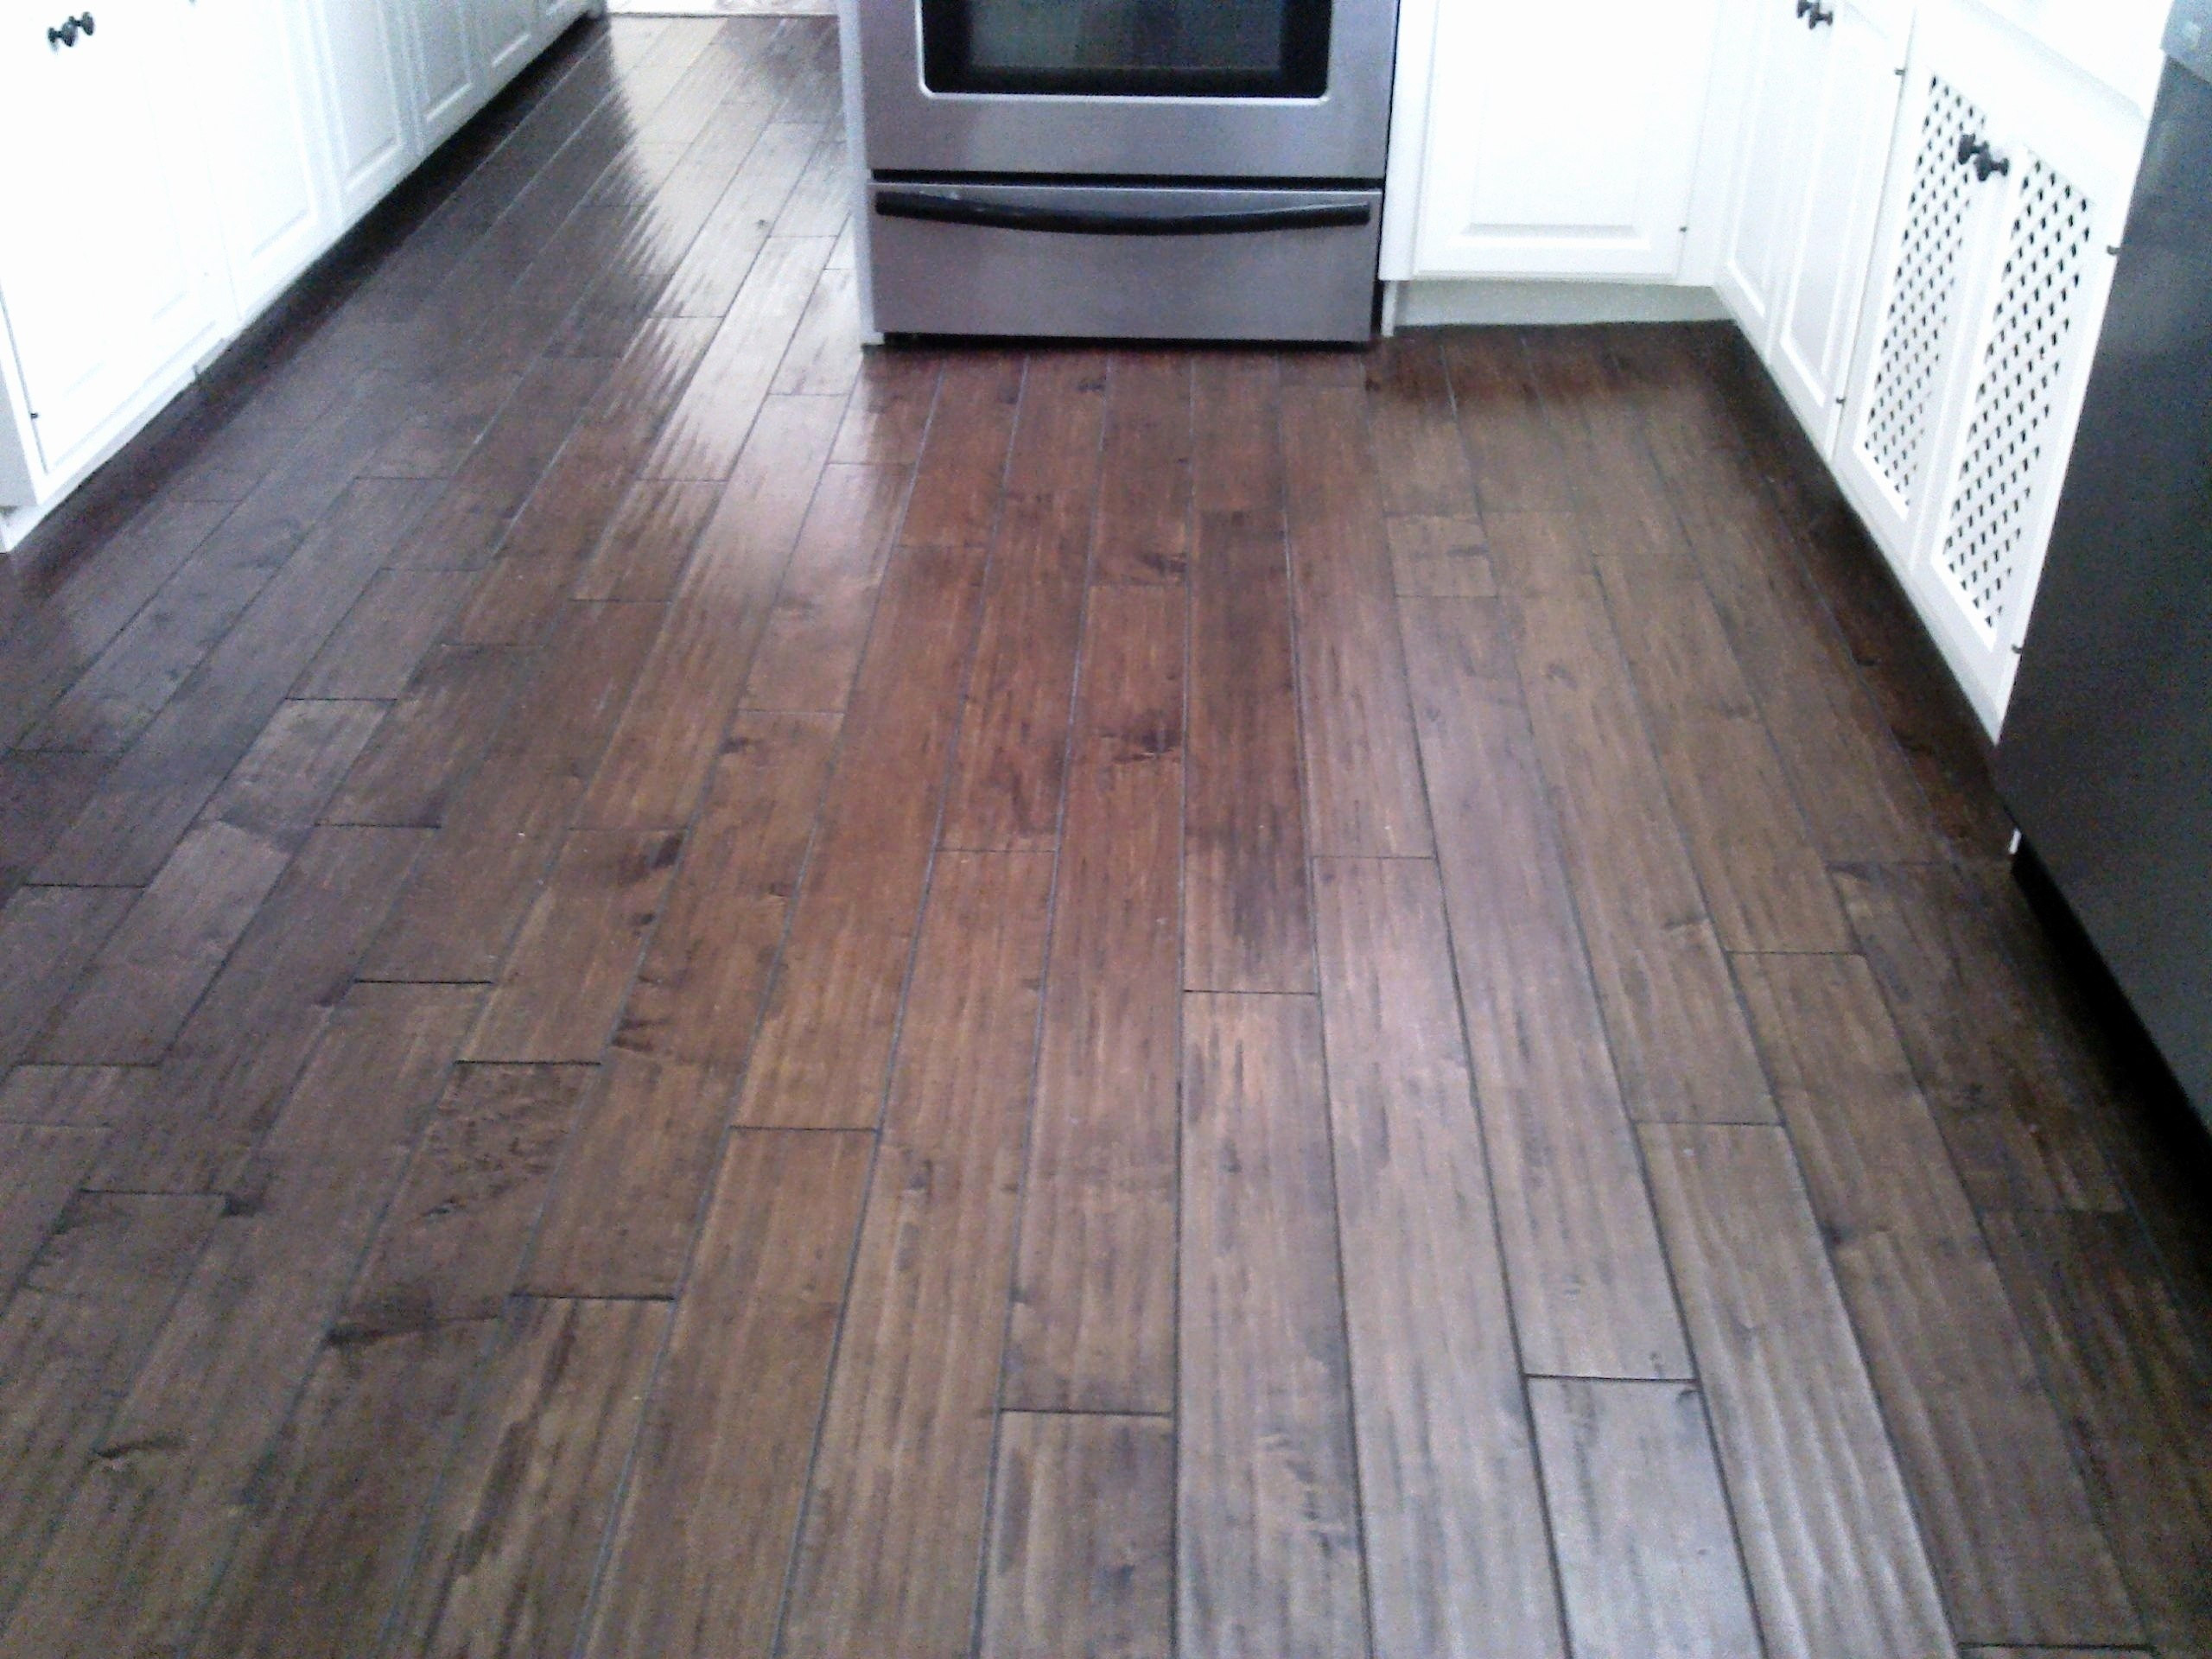 Hand Scraped Hardwood Laminate Flooring Of Stain Laminate Floors Elegant Awesome Wood Flooring Laminate Great In Stain Laminate Floors Beautiful Ceramic Tile that Looks Like Hardwood Floor Podemosleganes Image Of Stain